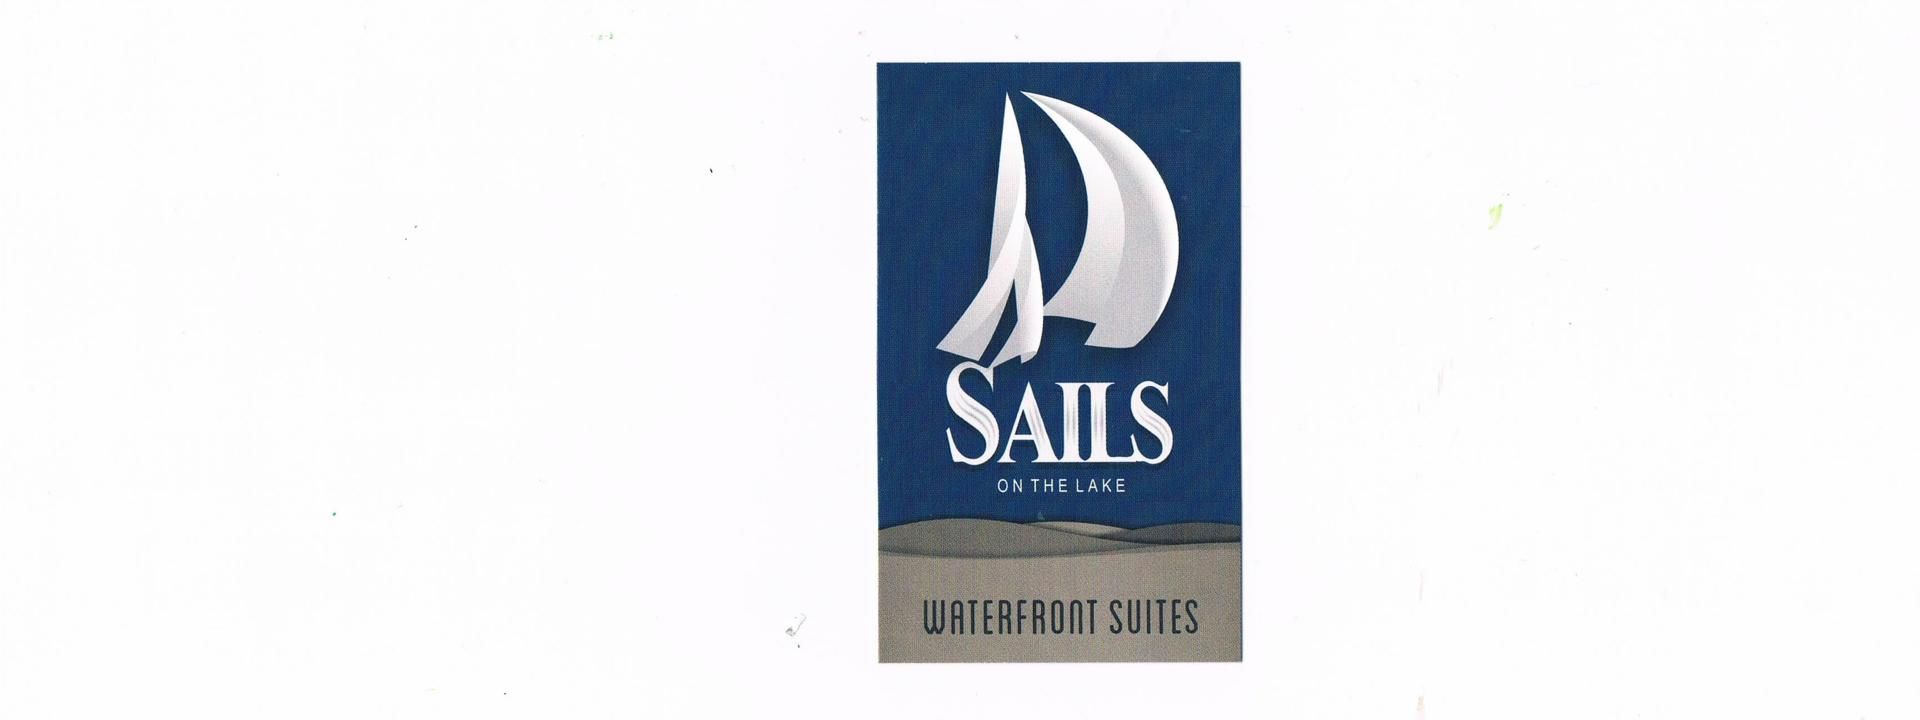 Logo: Sails on the Lake